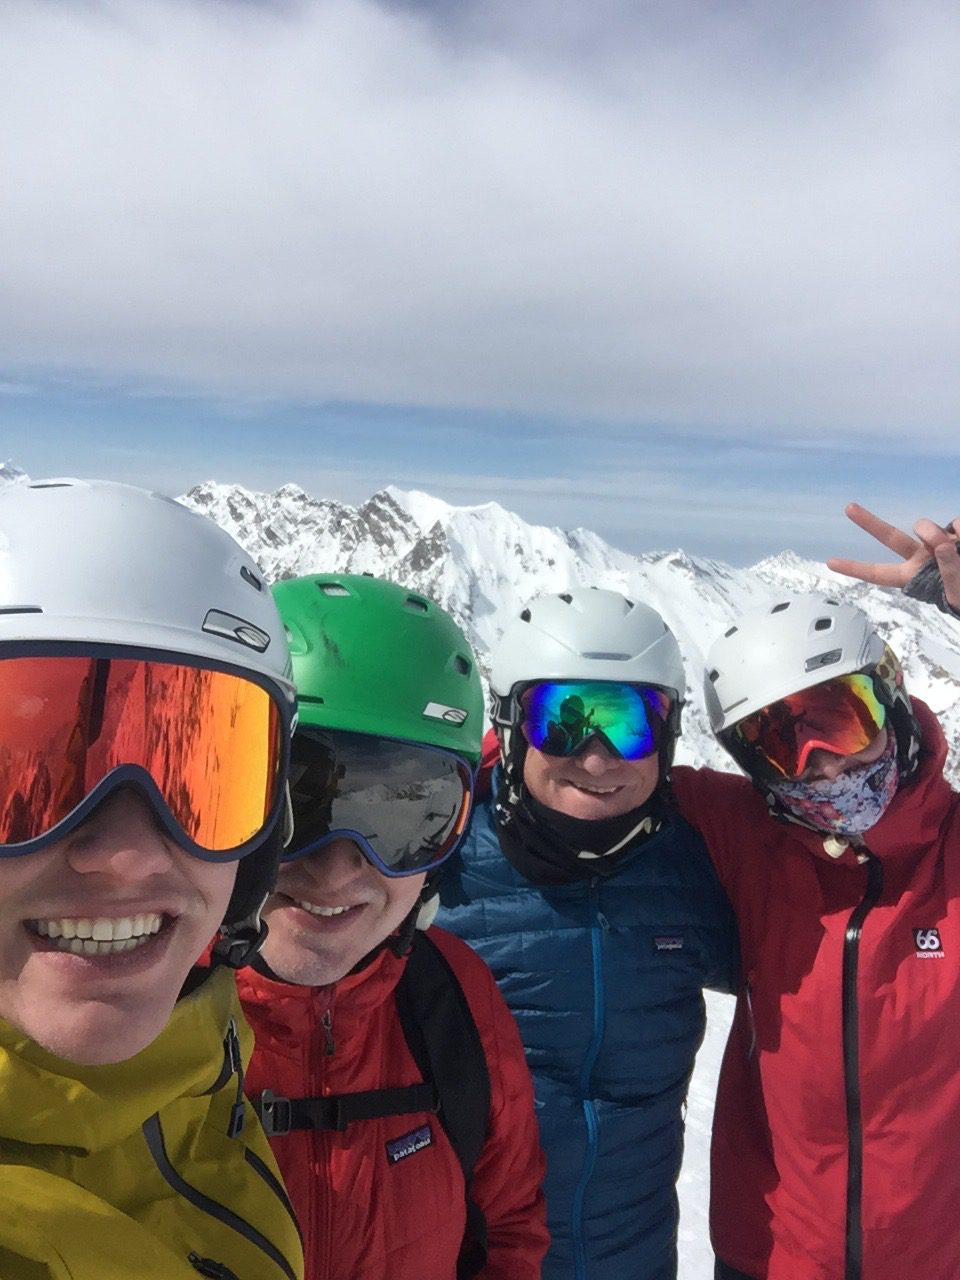 Some of the Kubert family at Alta March 2021